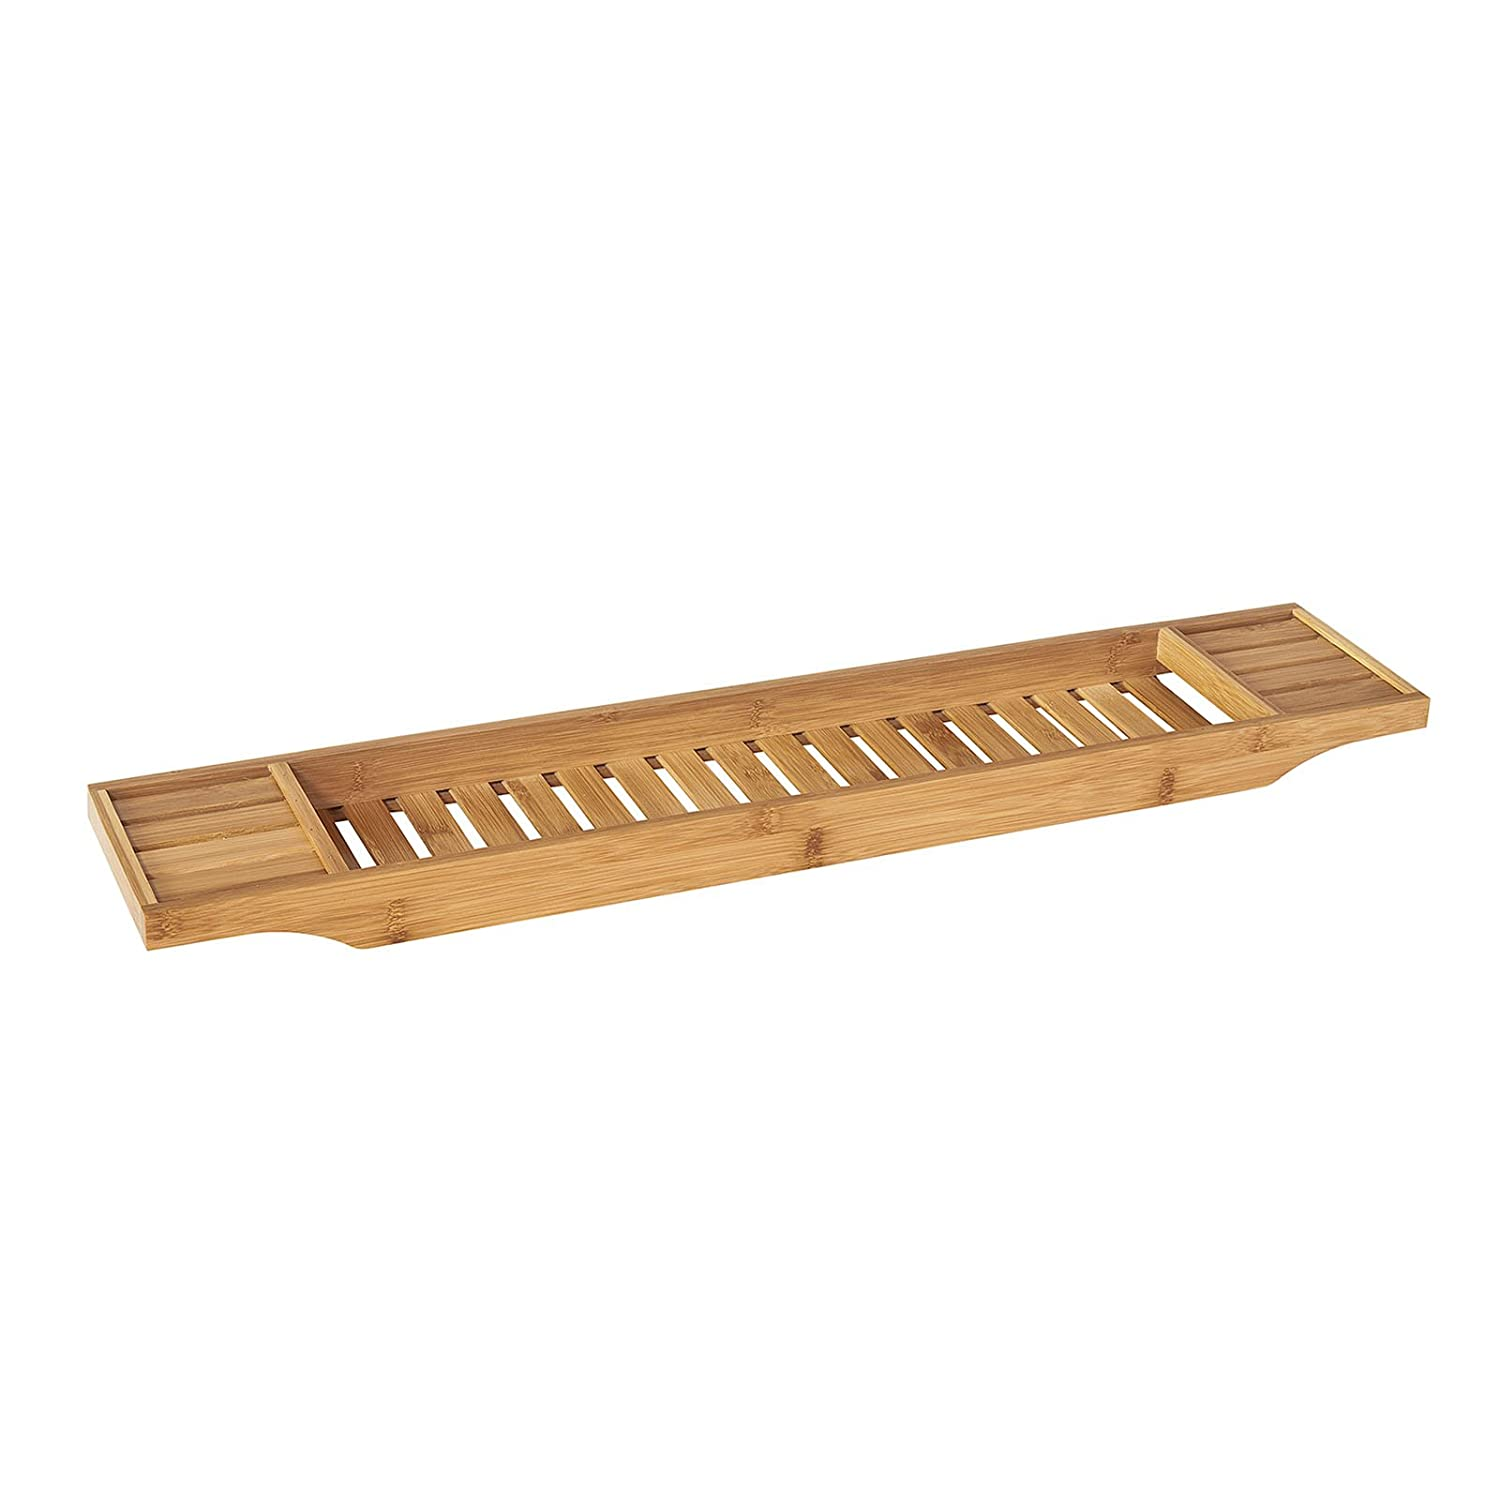 SoBuy FRG212-N, Bamboo Bathtub Rack Caddy Tray, Bathroom Shelf, 80x15x4cm